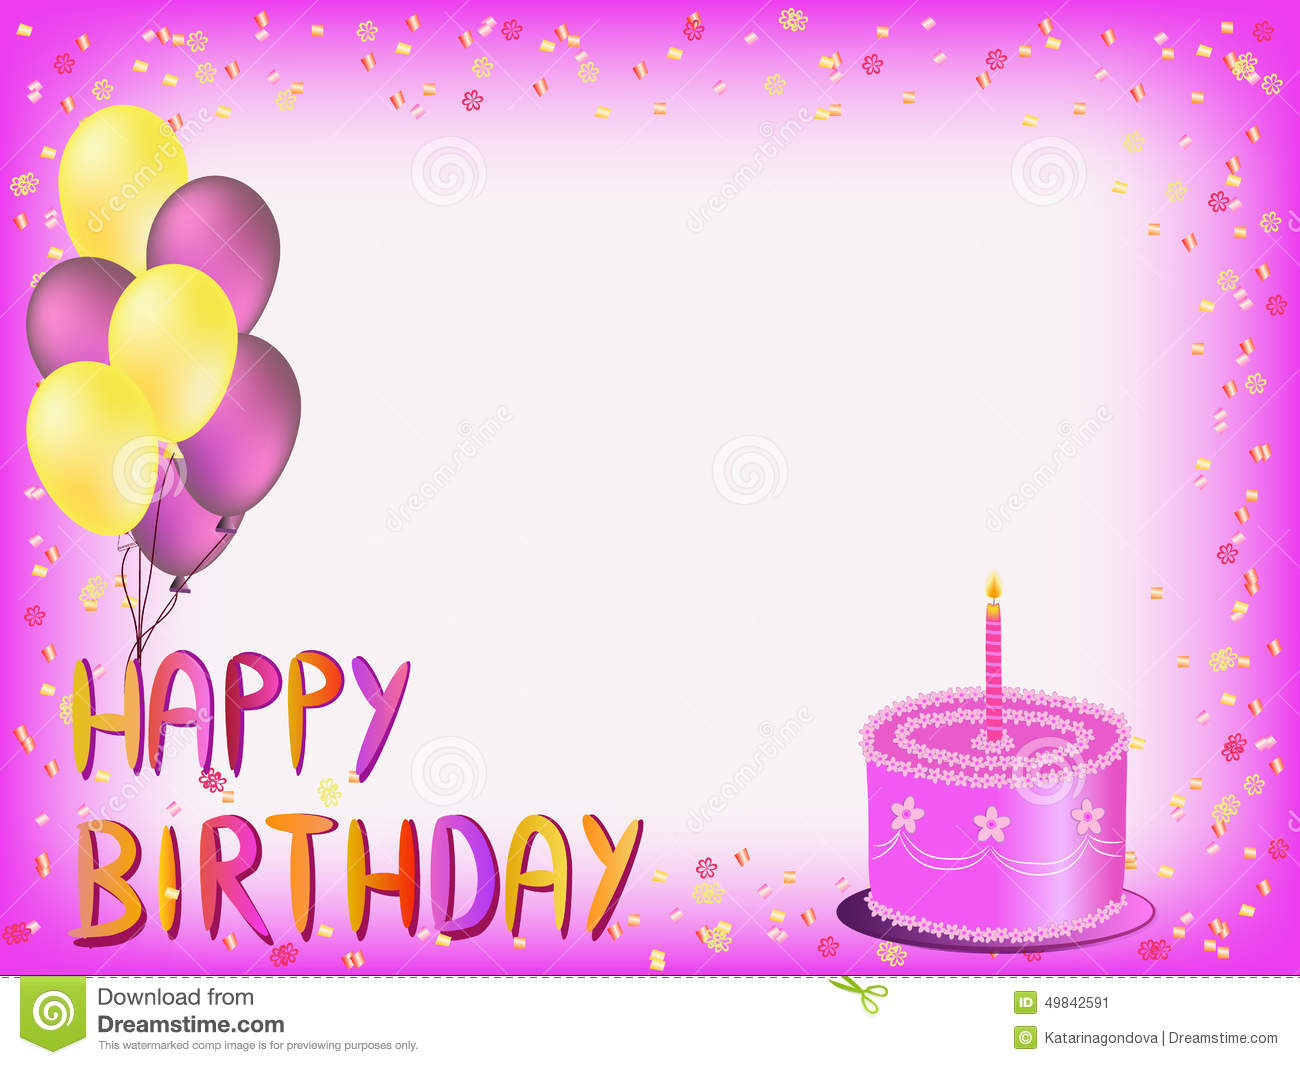 background images for birthday greetings ; birthday-wish-card-reeting-cards-good-happiness-birthdays-wishes-all-inspiration-birthdays-purple-white-background-balloons-cakes